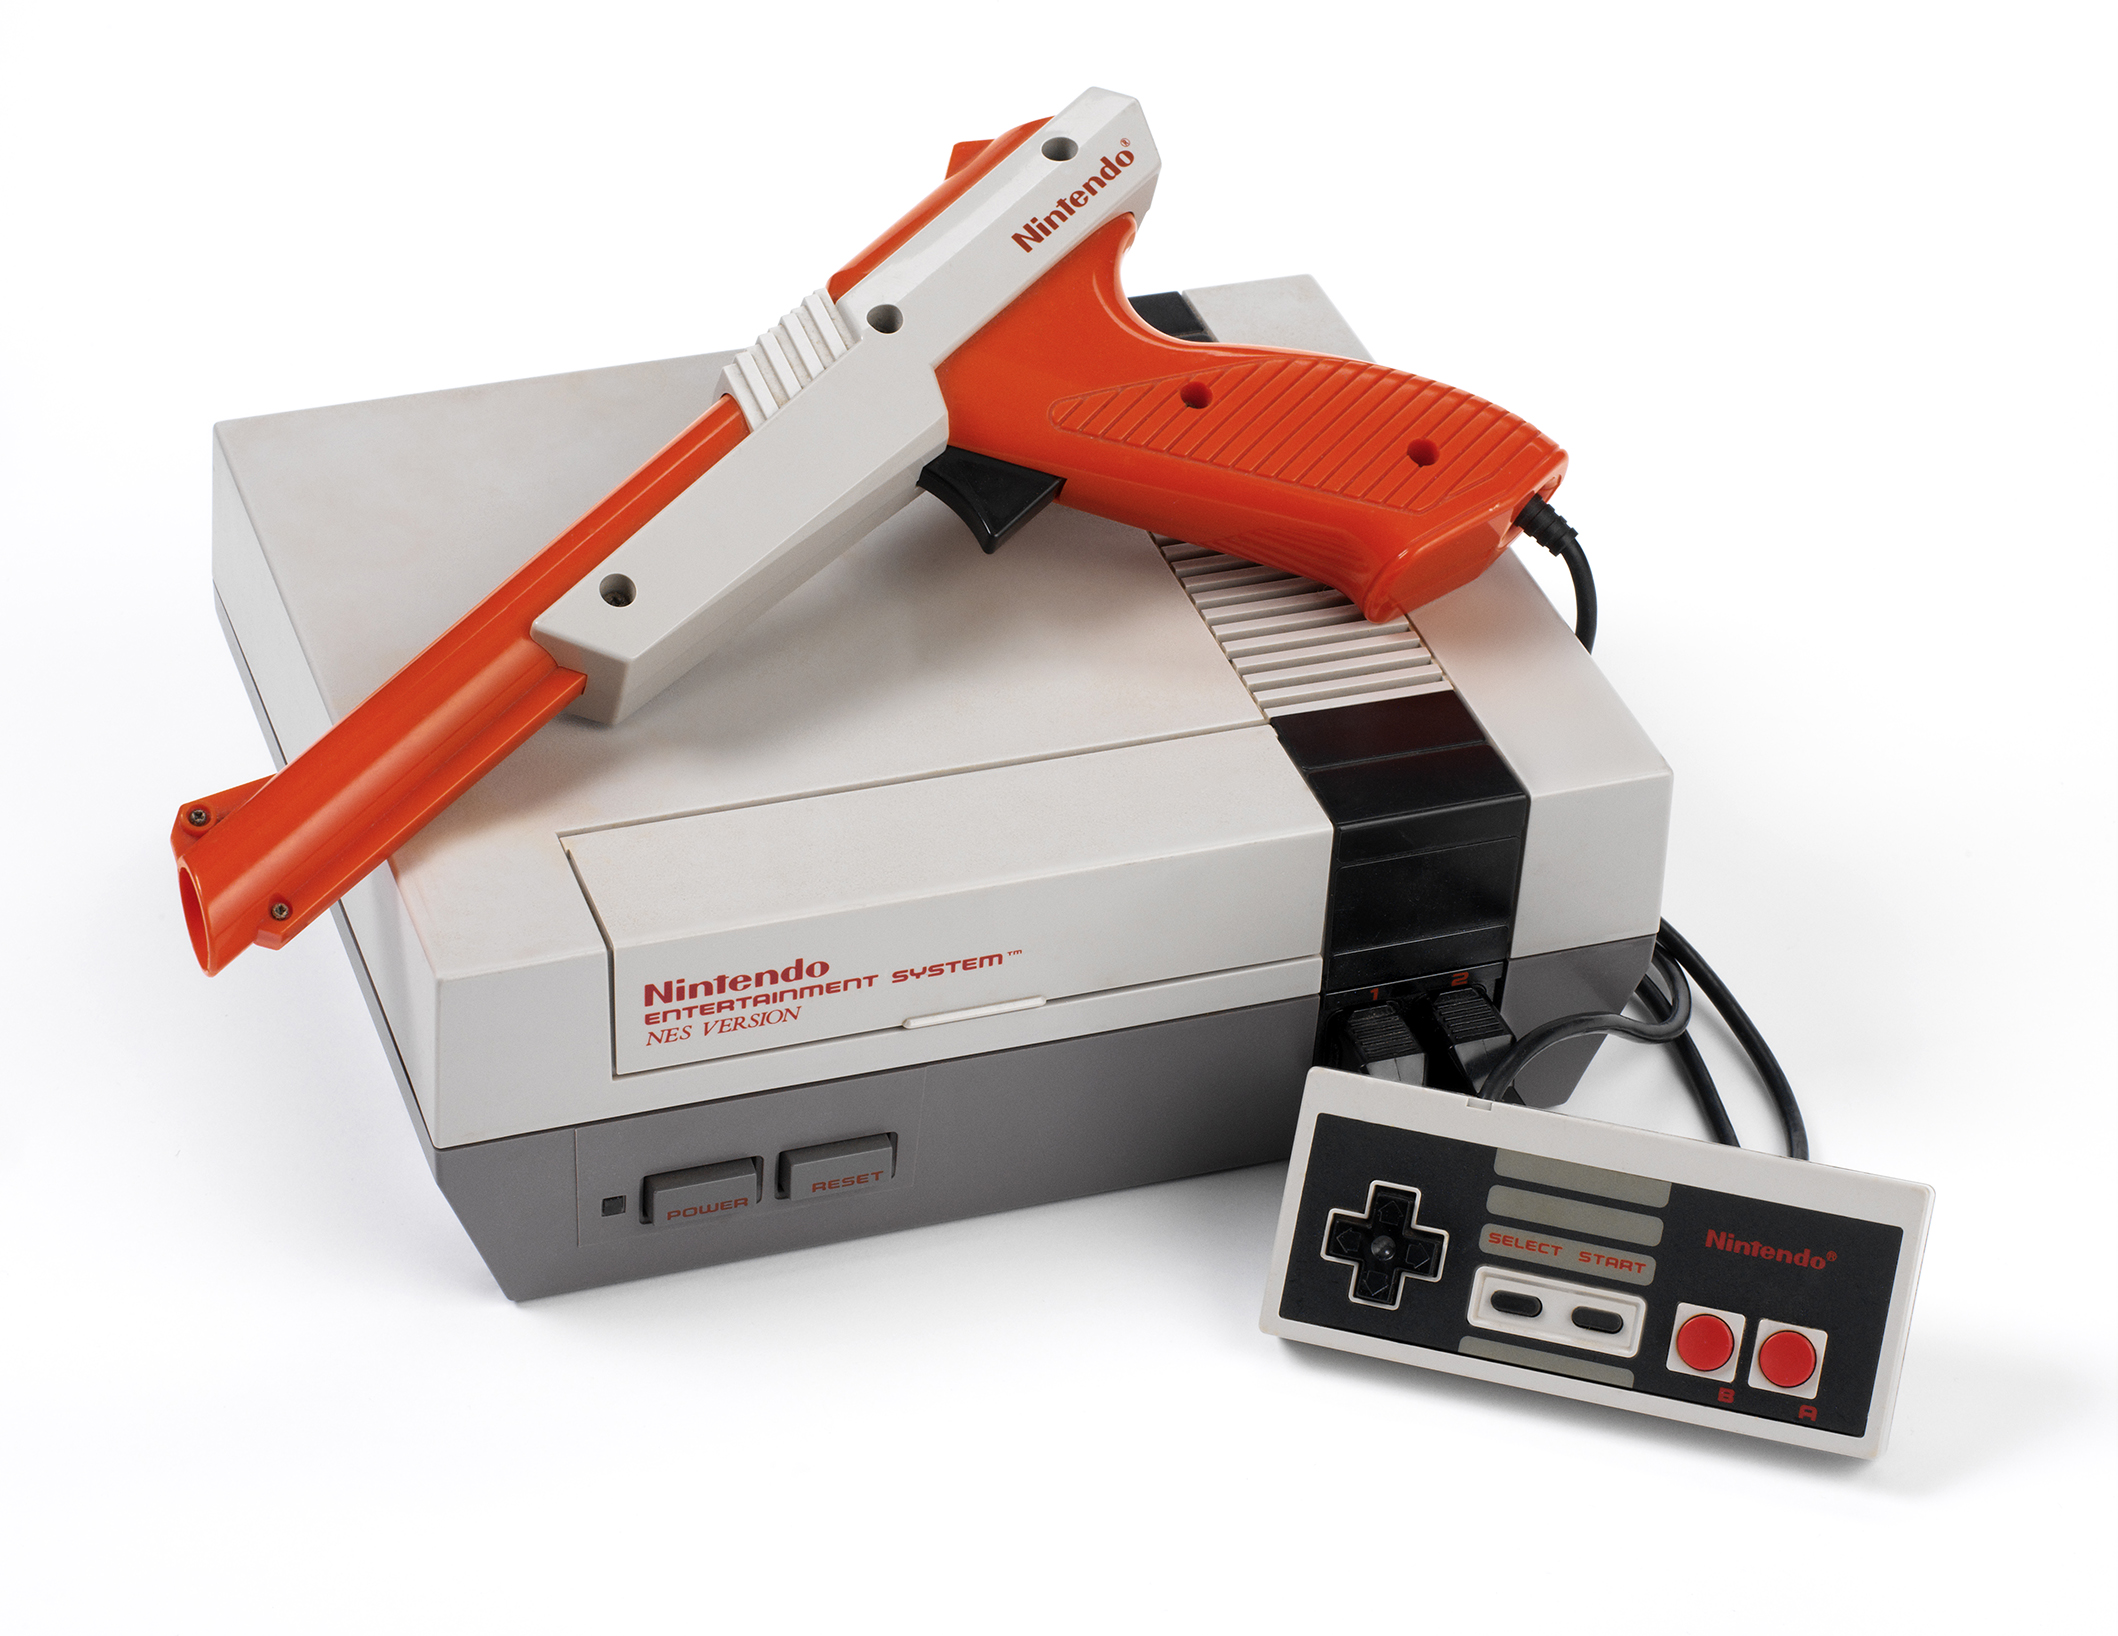 The NES, a home video game console by Nintendo